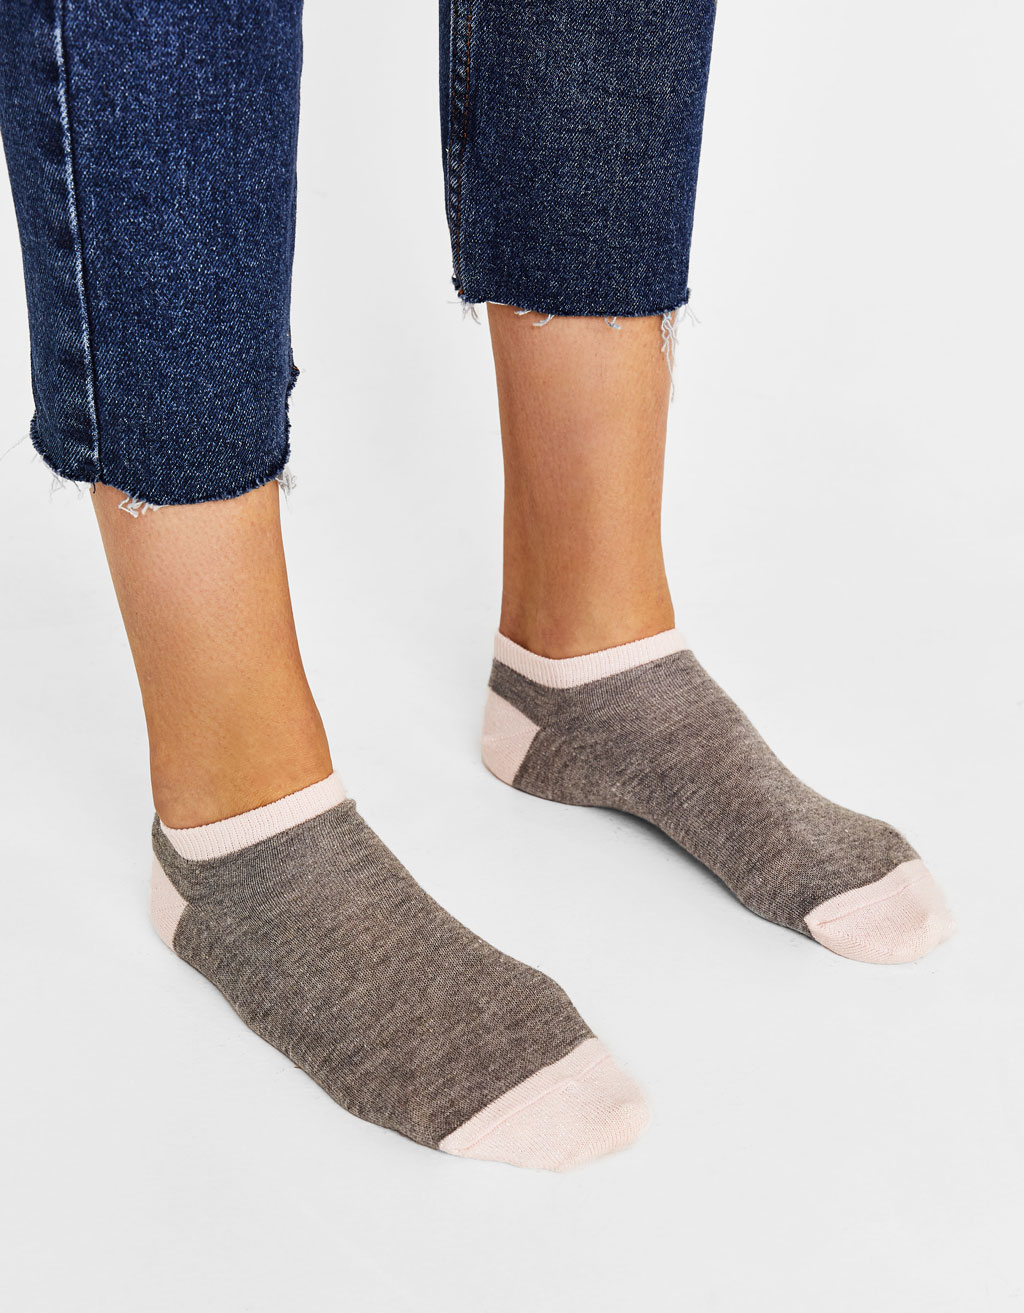 Ankle socks with metallic thread